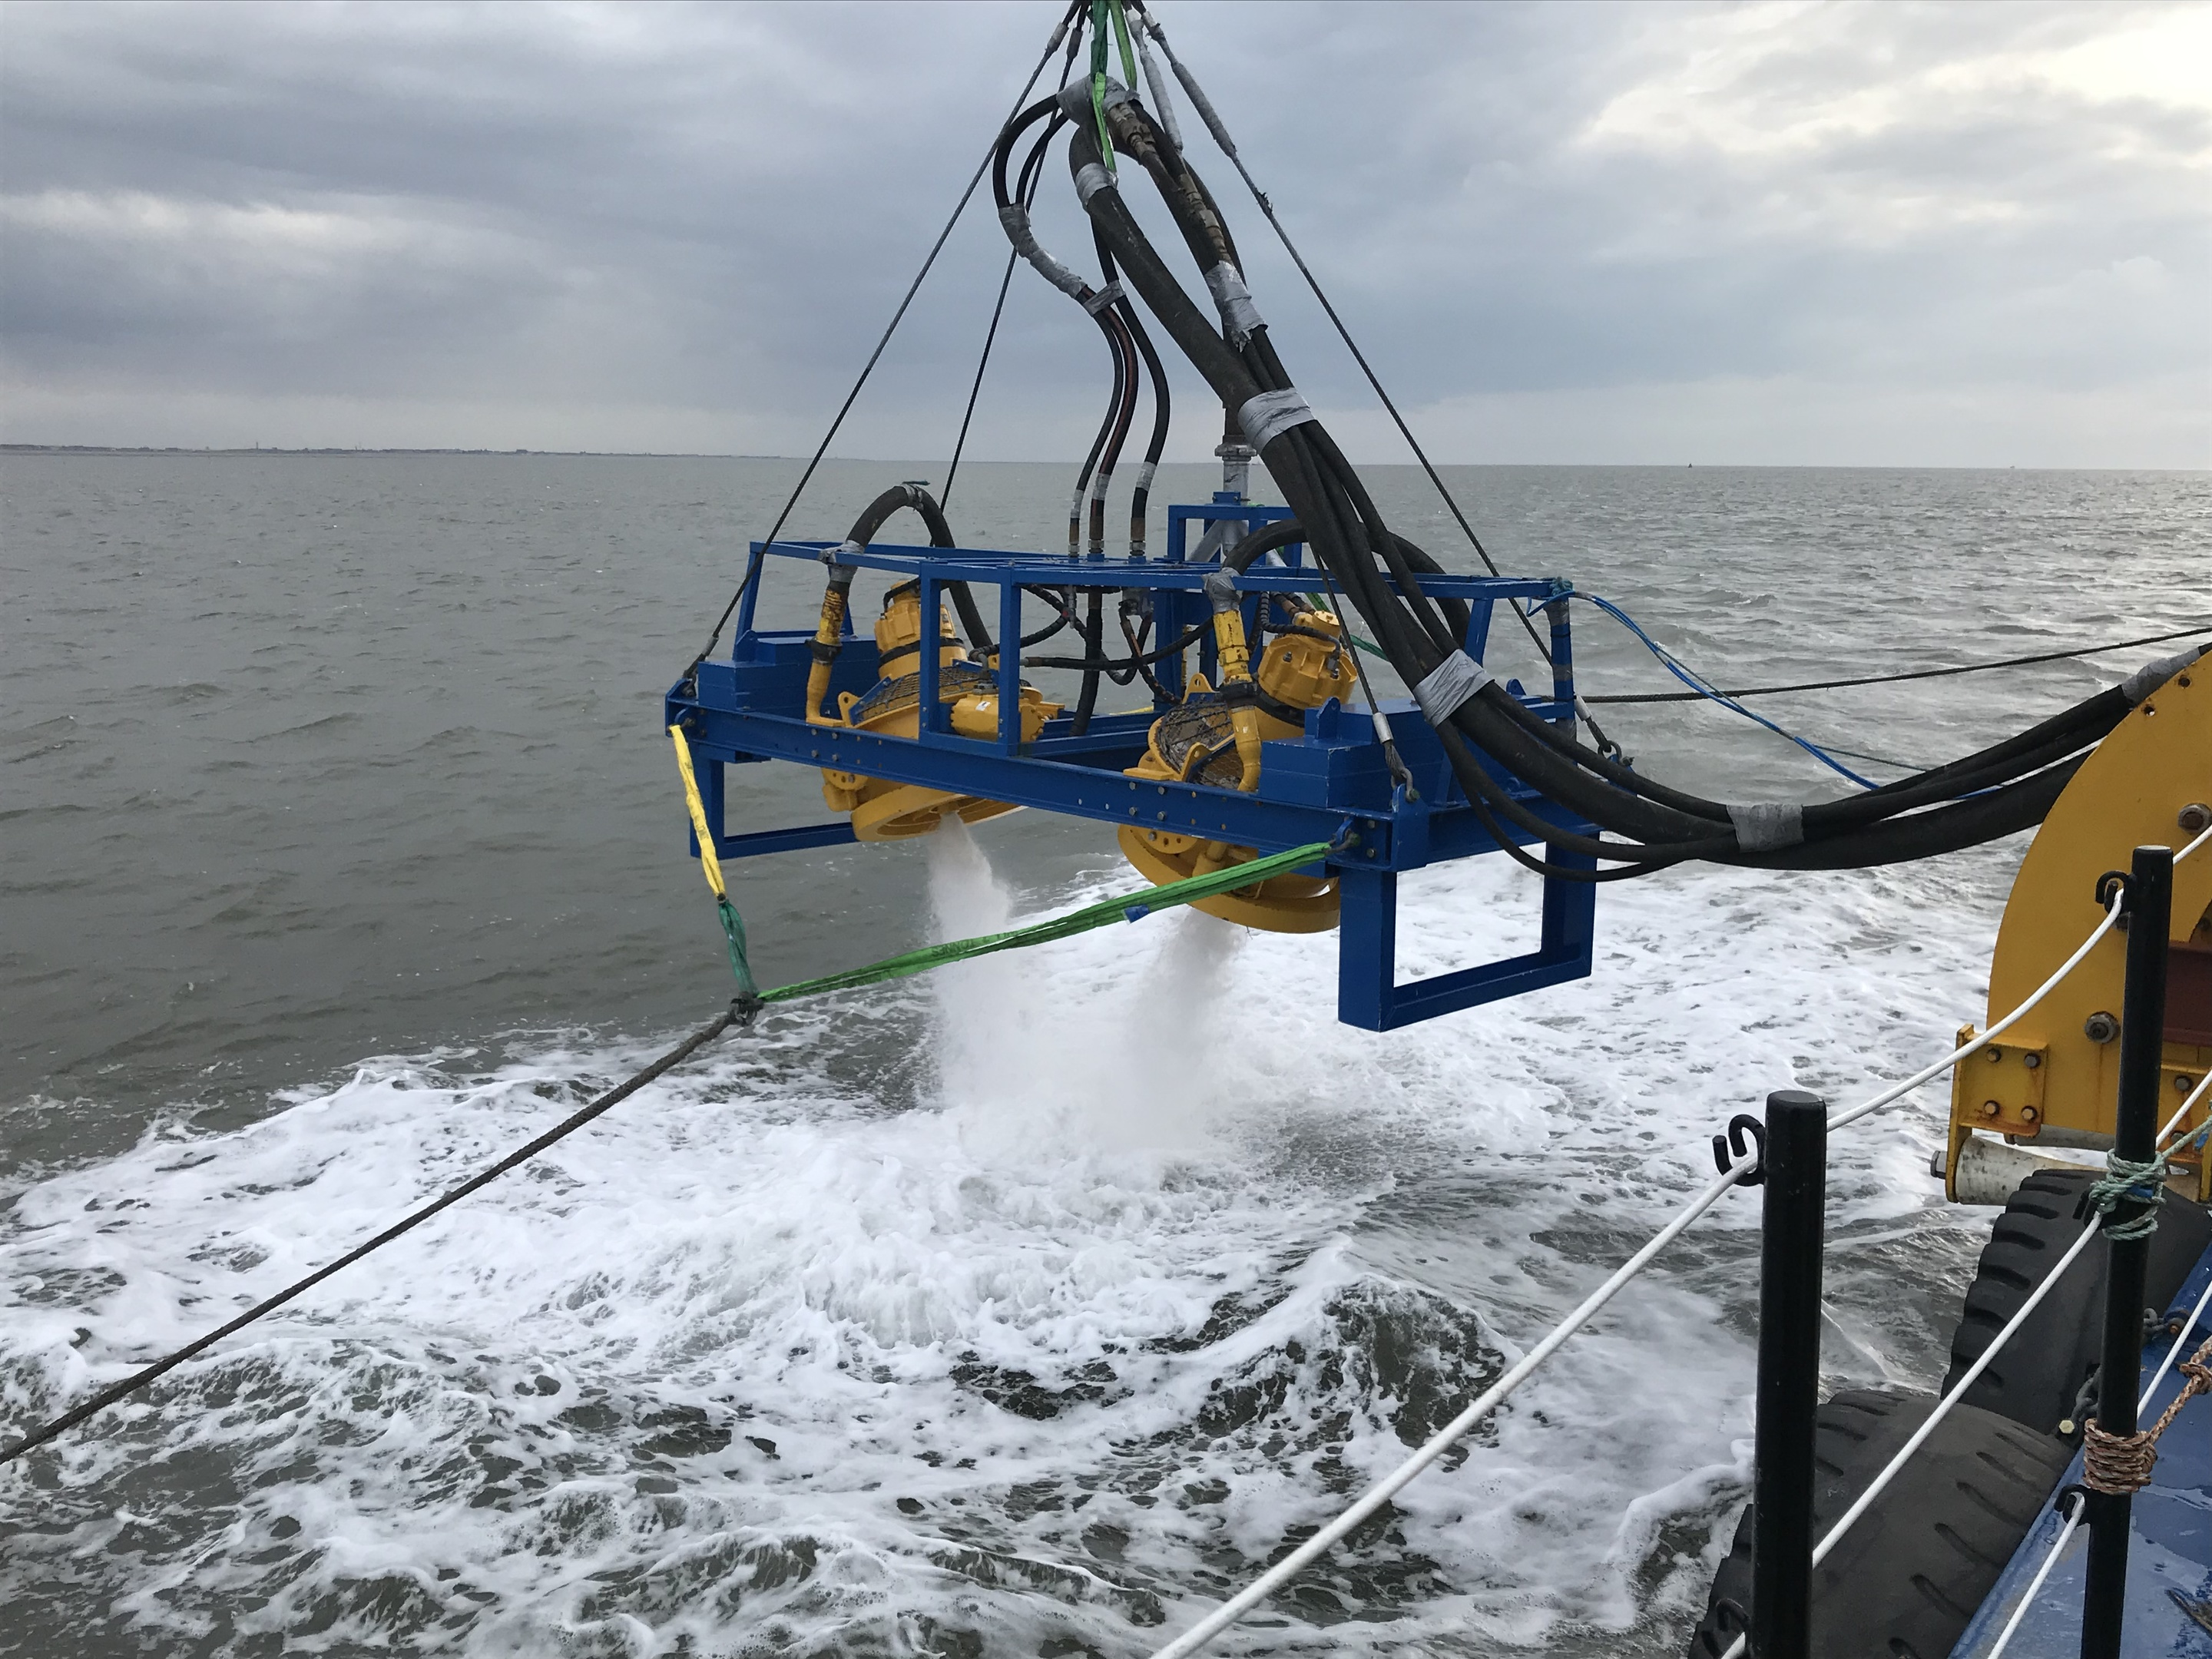 Work continues on the East Anglia One wind farm and James Fisher has been chosen to detect and clear any unexploded ordinance and boulders.